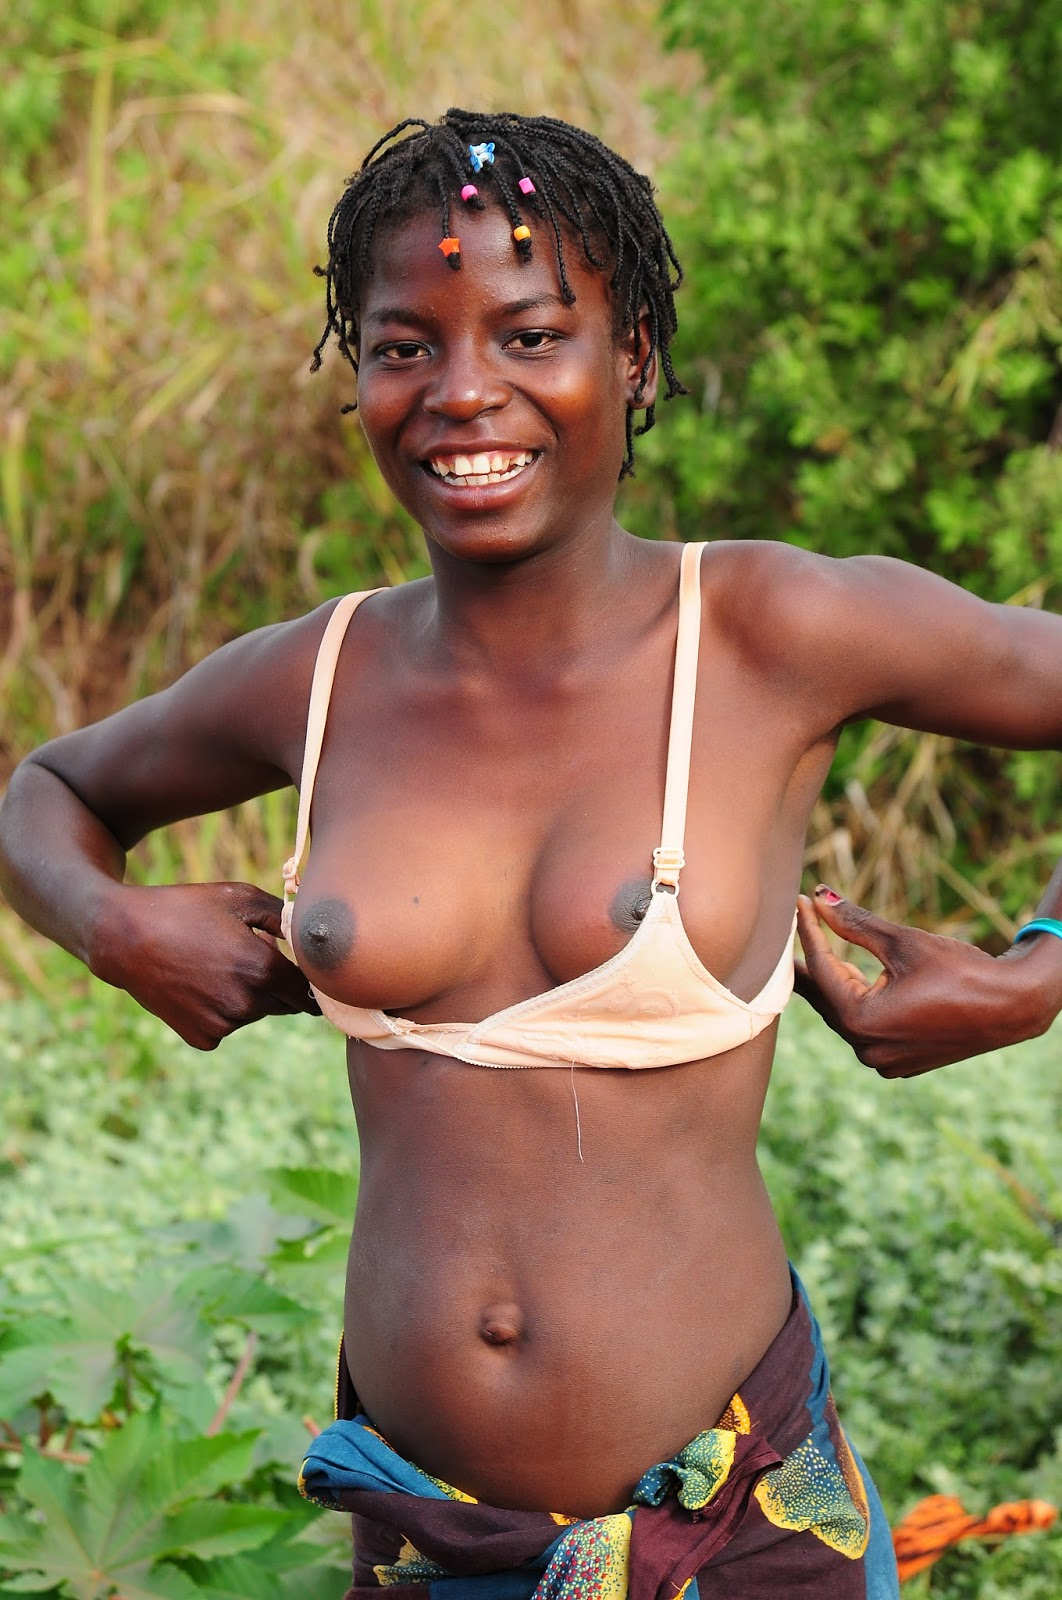 girls tribes african South nude